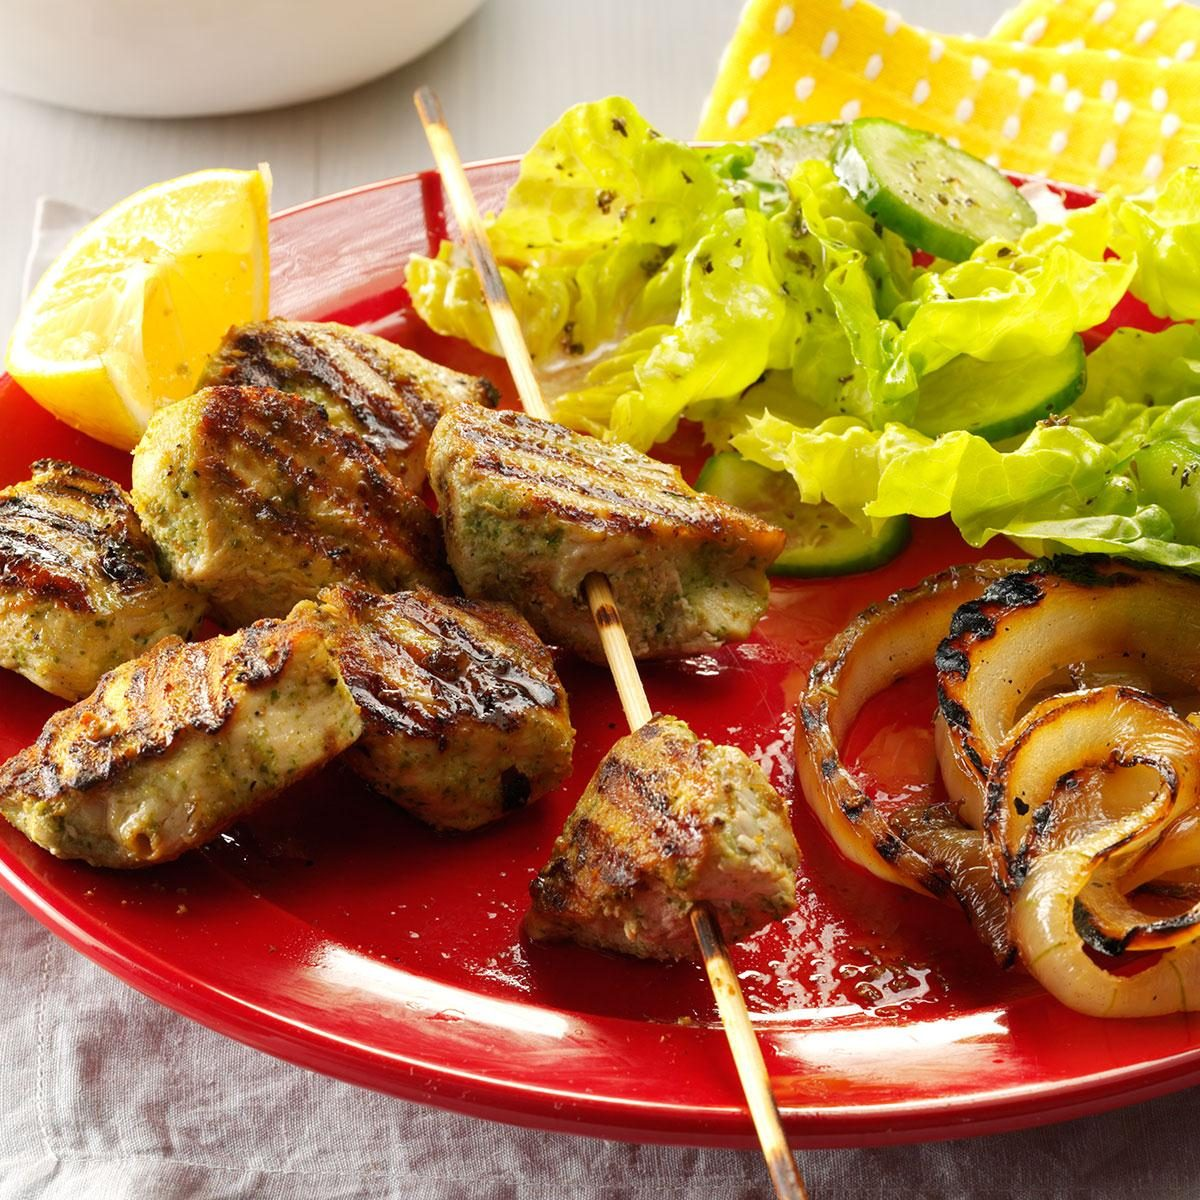 Cilantro & Lemon Marinated Chicken Kabobs